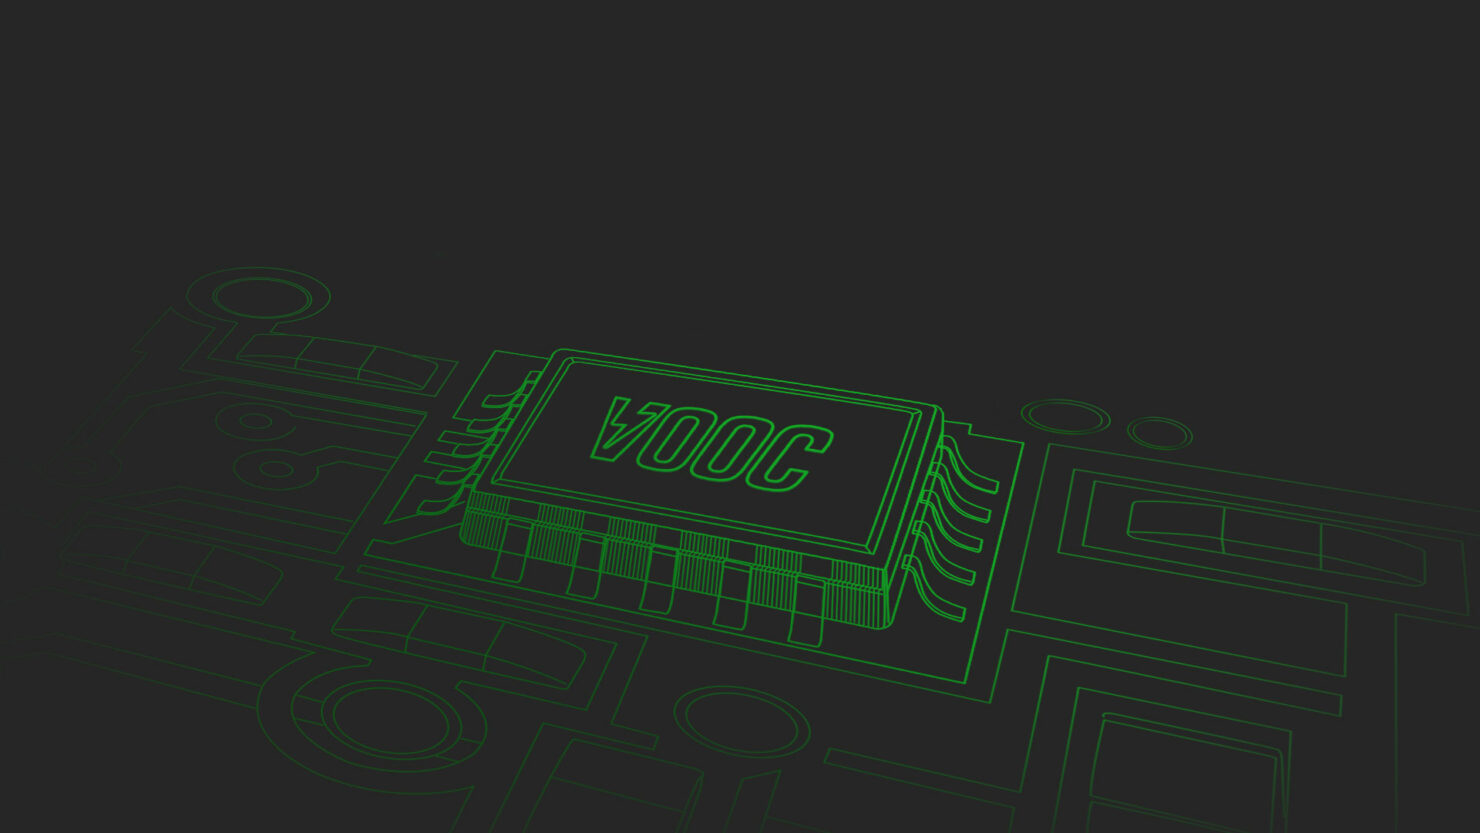 OPPO Super VOOC Fast-Charging Technology Explained